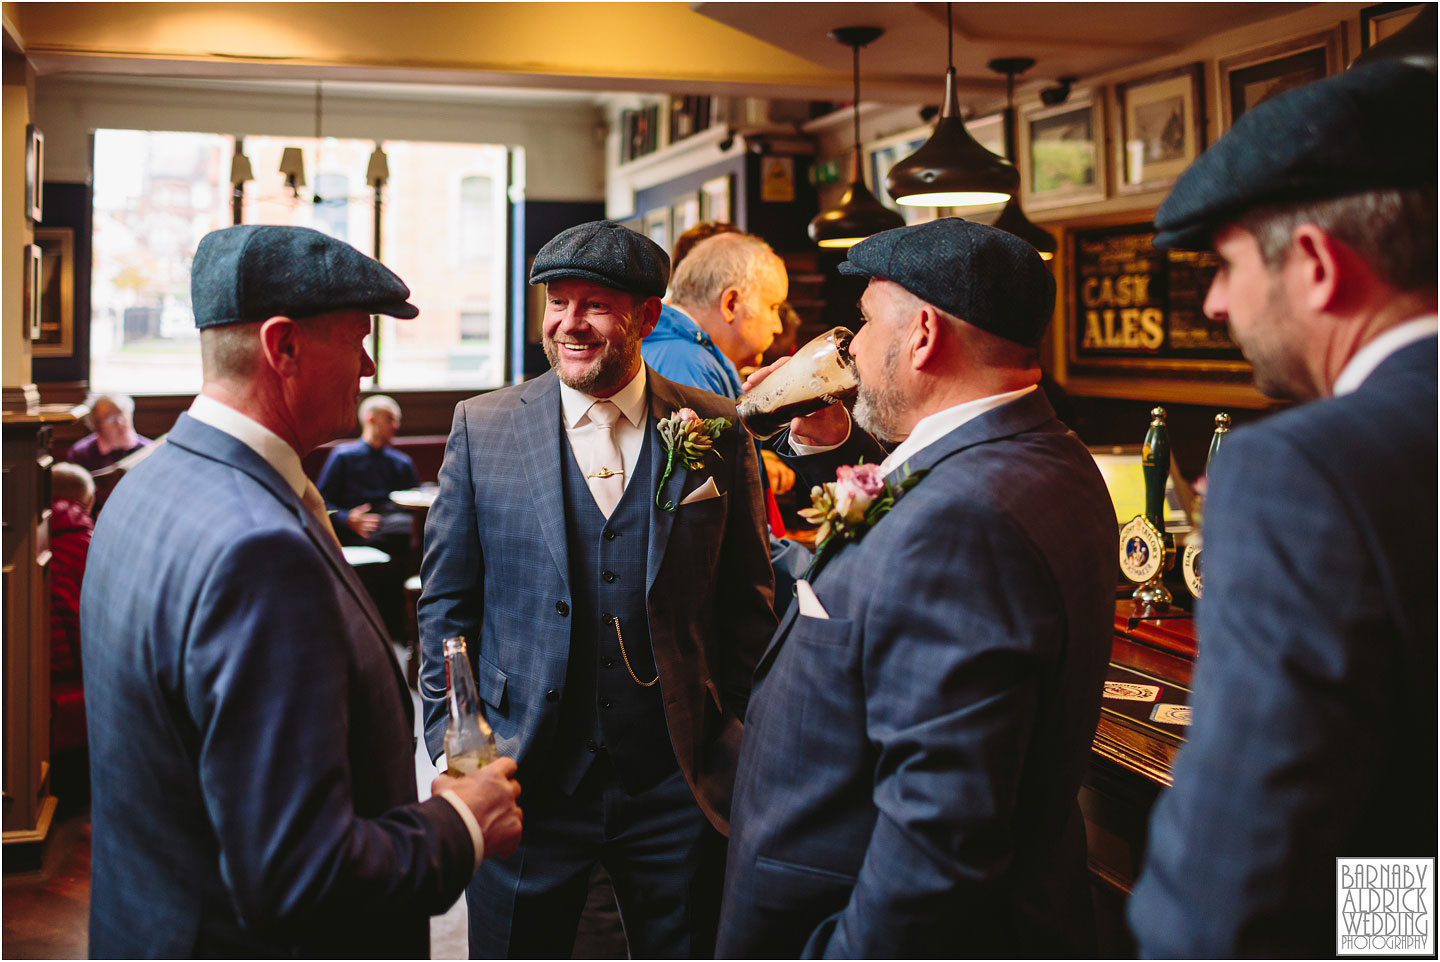 Peaky blinders groomsmen in a pub, Small Civil Ceremony at Leeds Town Hall, Leeds city centre wedding photos